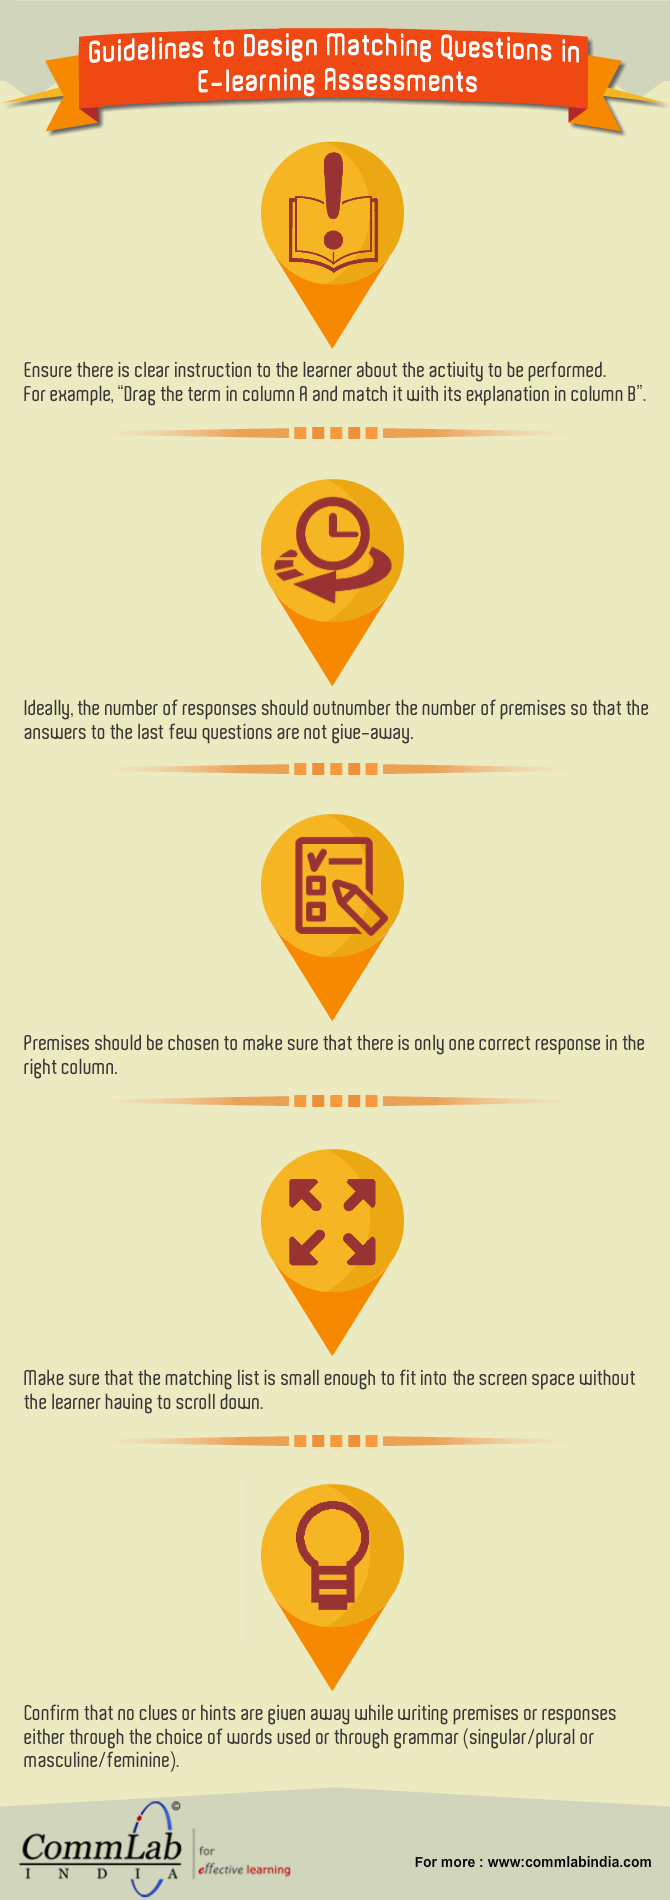 Guidelines to Design Matching Questions in E-learning Assessments [InfoGraphic]